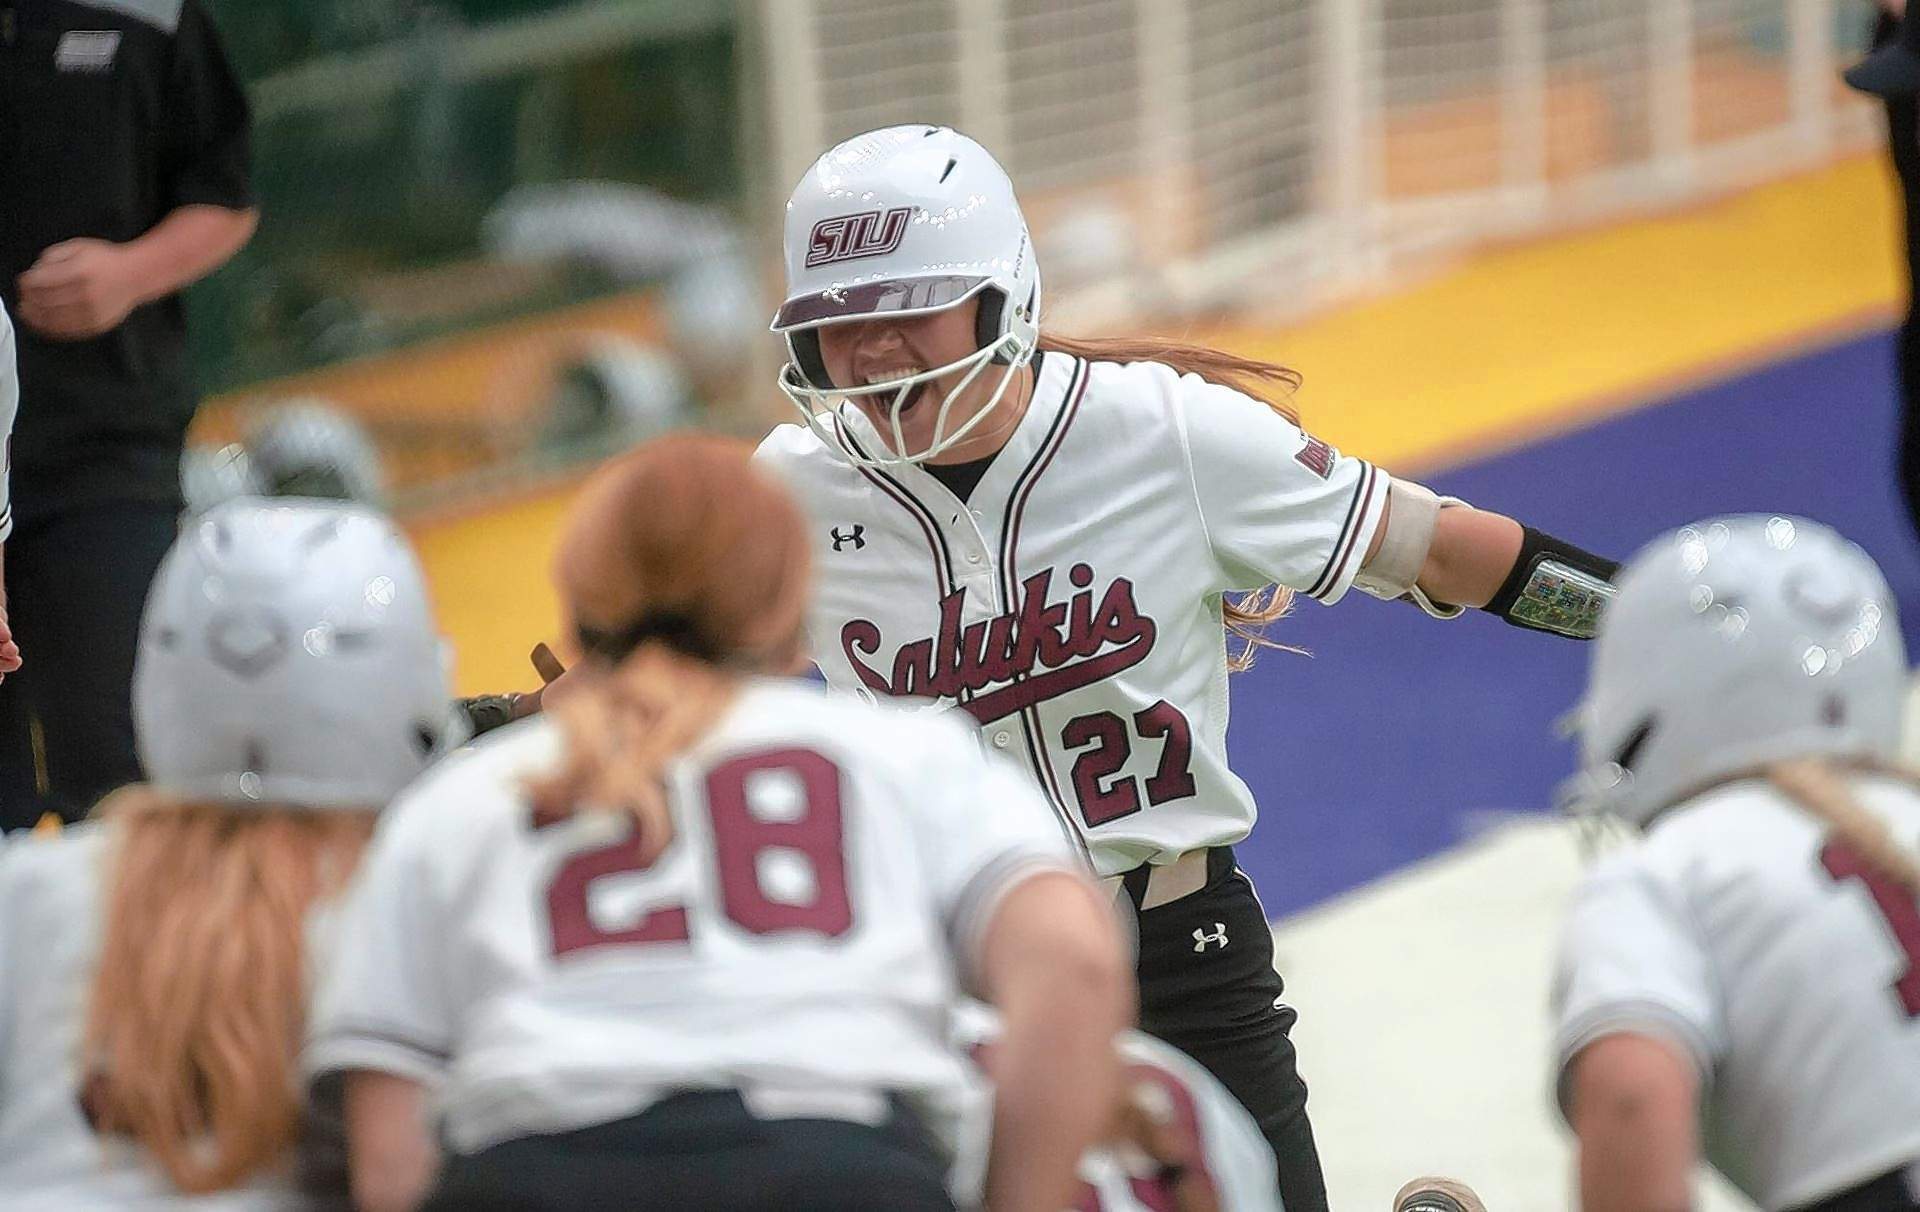 SIU's Maddy Vermejan led the way for the Salukis at the plate Sunday against UNI as she went 3-for-4.